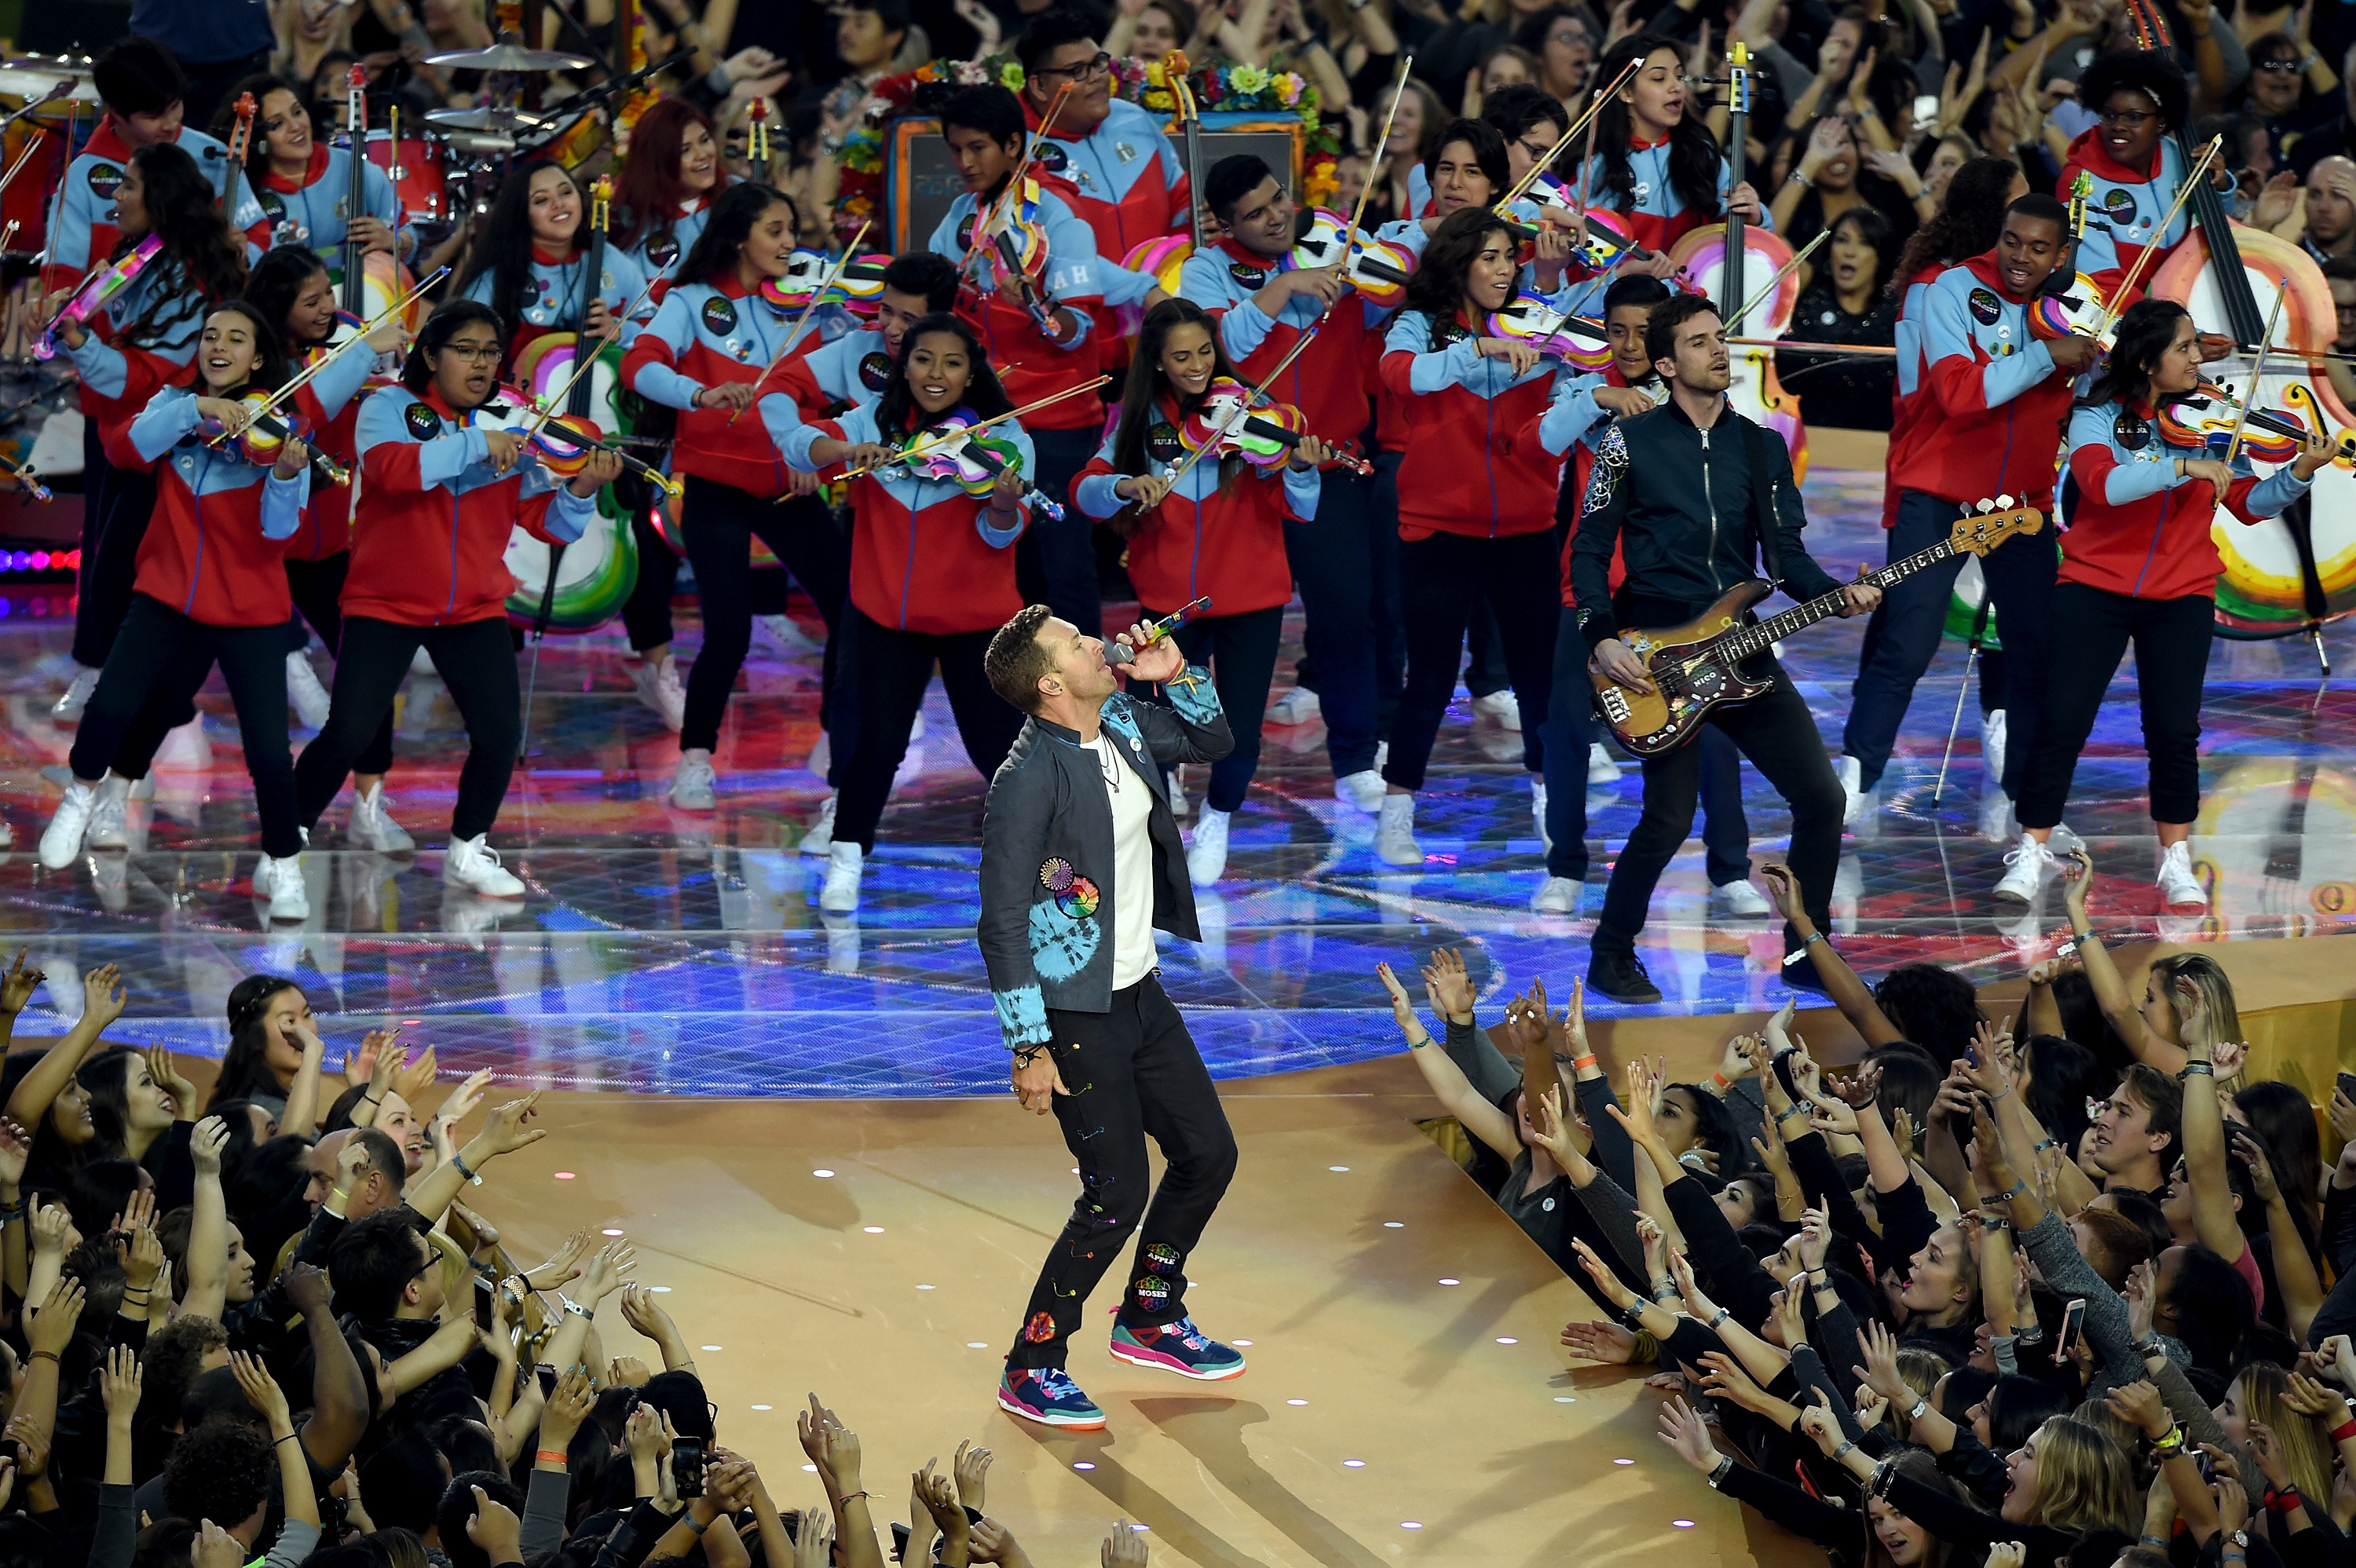 Chris Martin and Guy Berryman of Coldplay perform during the Pepsi Super Bowl 50 Halftime Show at Levi's Stadium on Feb. 7, 2016 in Santa Clara, Calif.